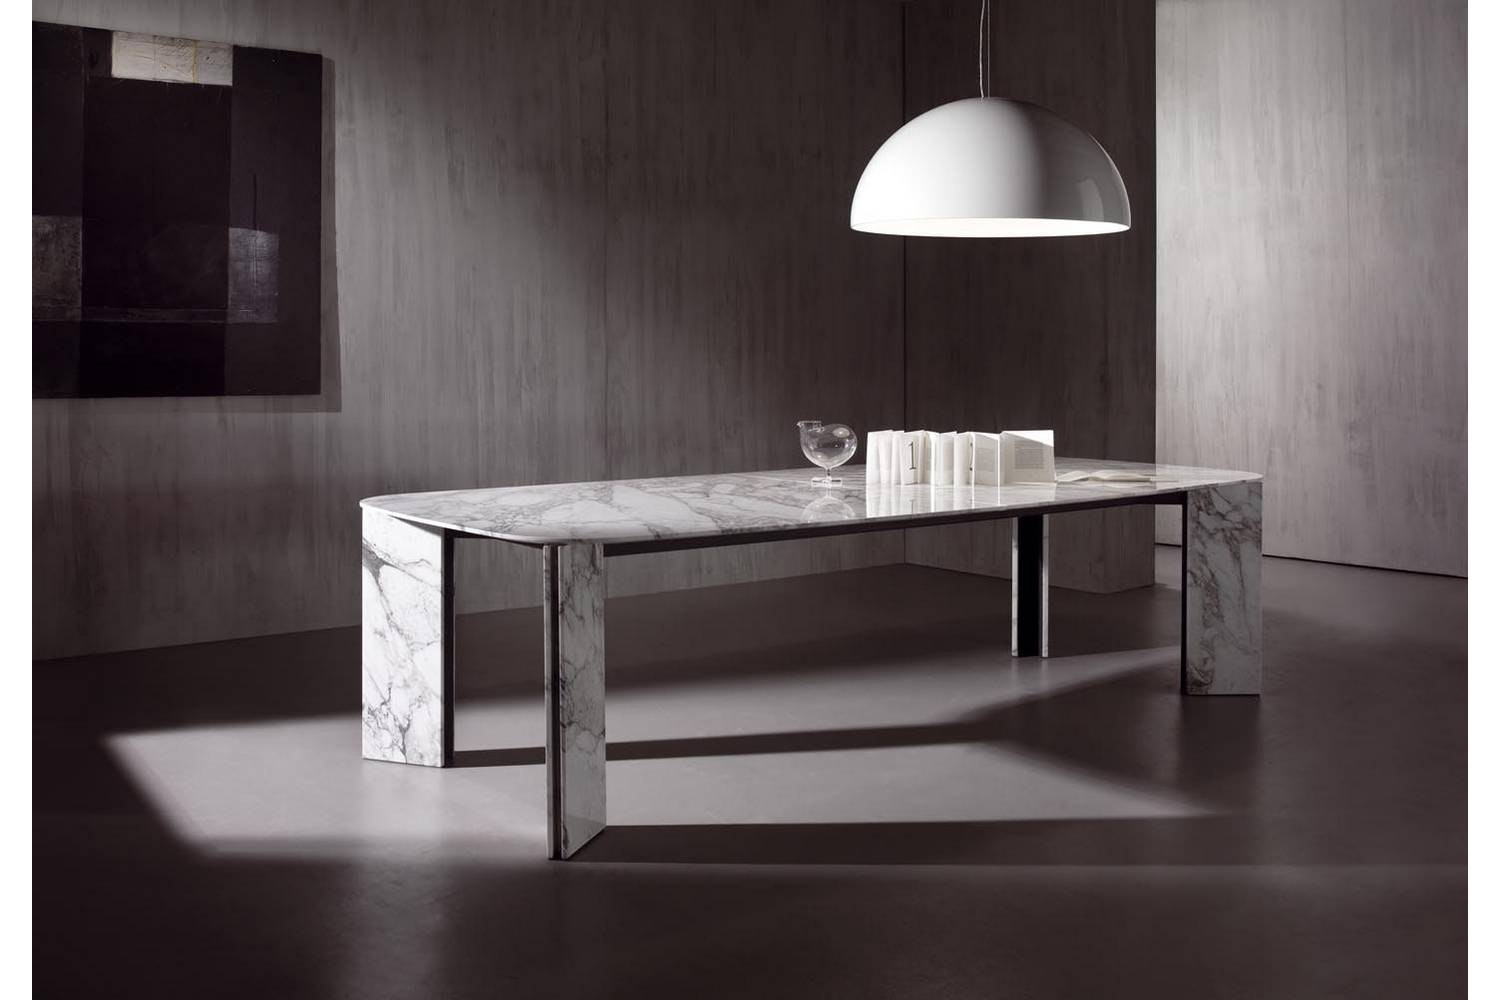 Maxwell Table by Massimo Castagna for Acerbis